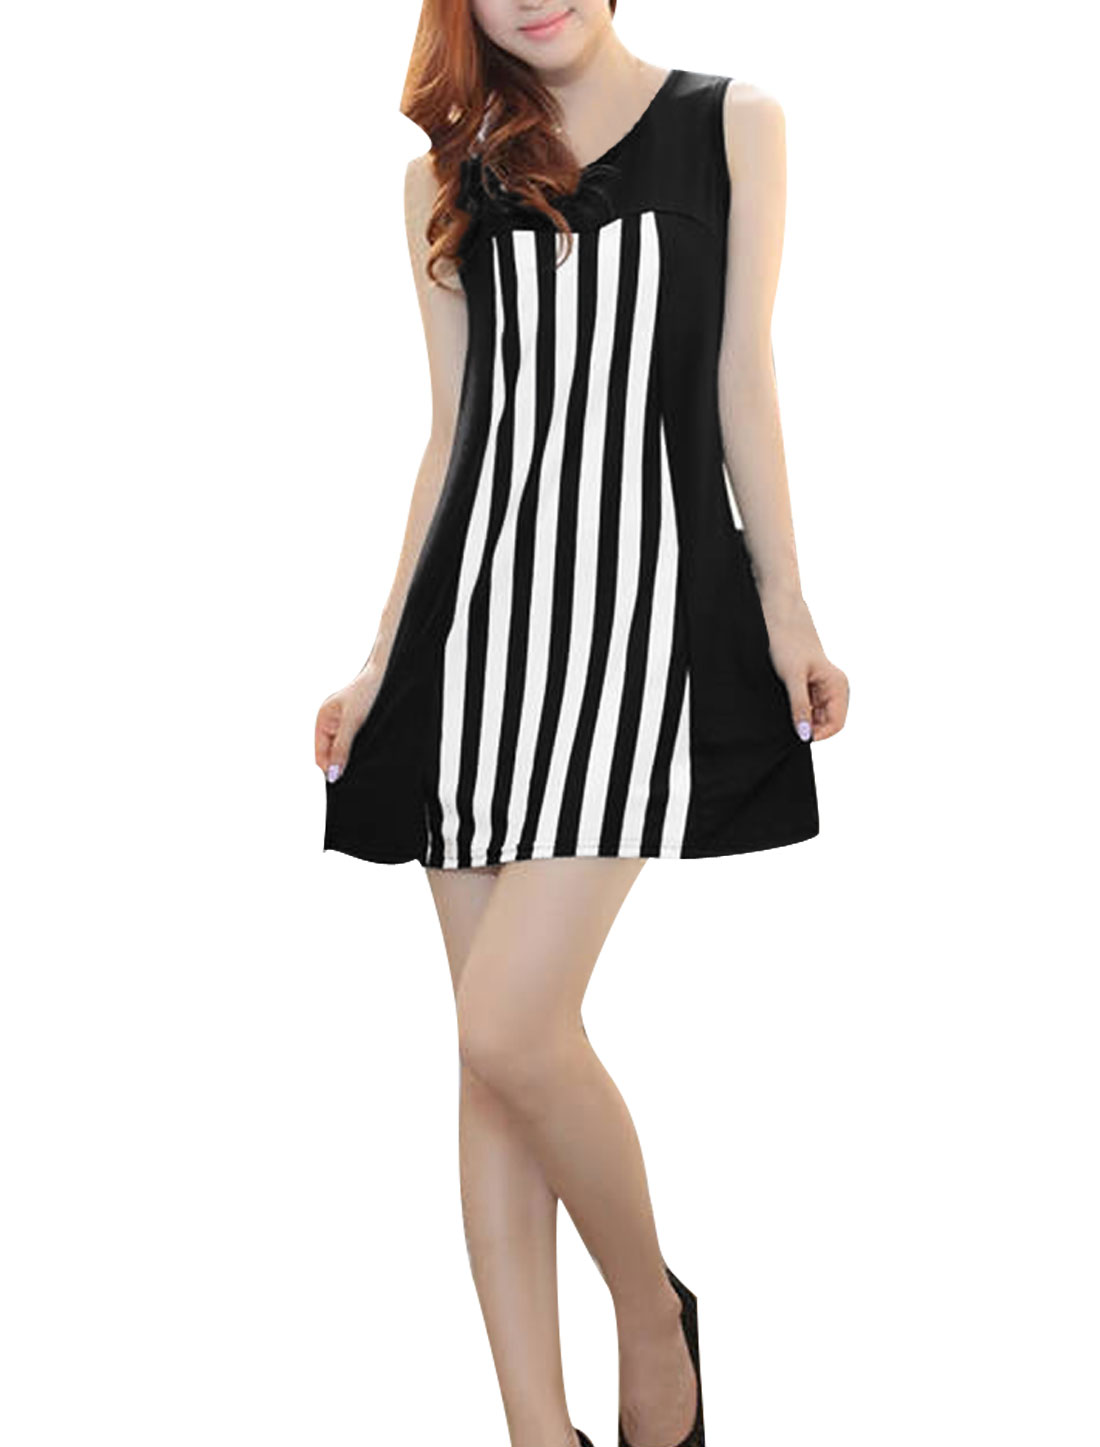 Lady Stylish Sleeveless Stripes Prints Elastic Black White Dress XS